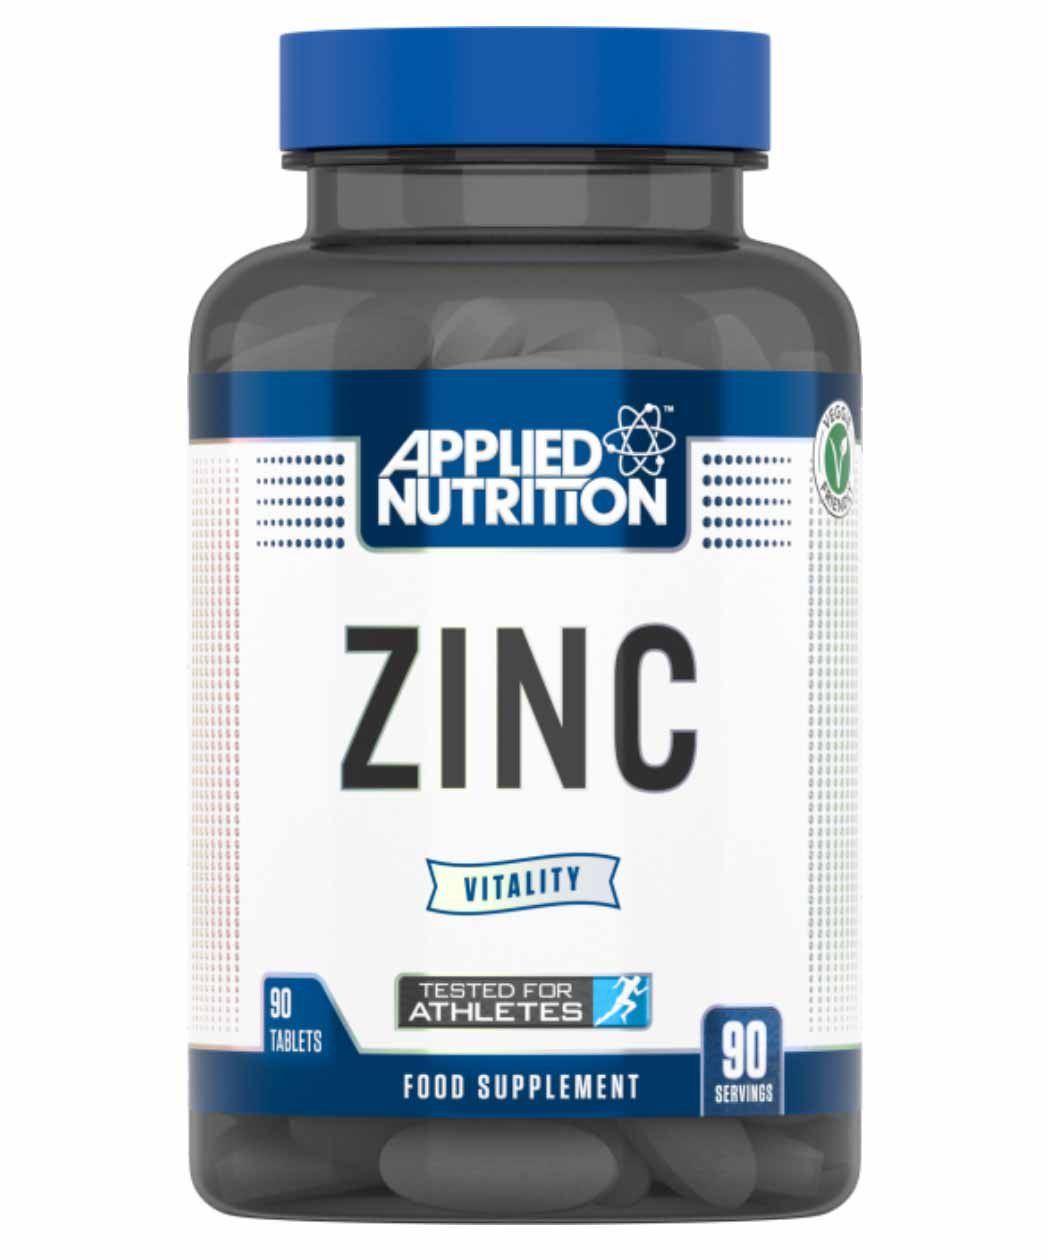 Applied Nutrition Zinc 90 Tablets